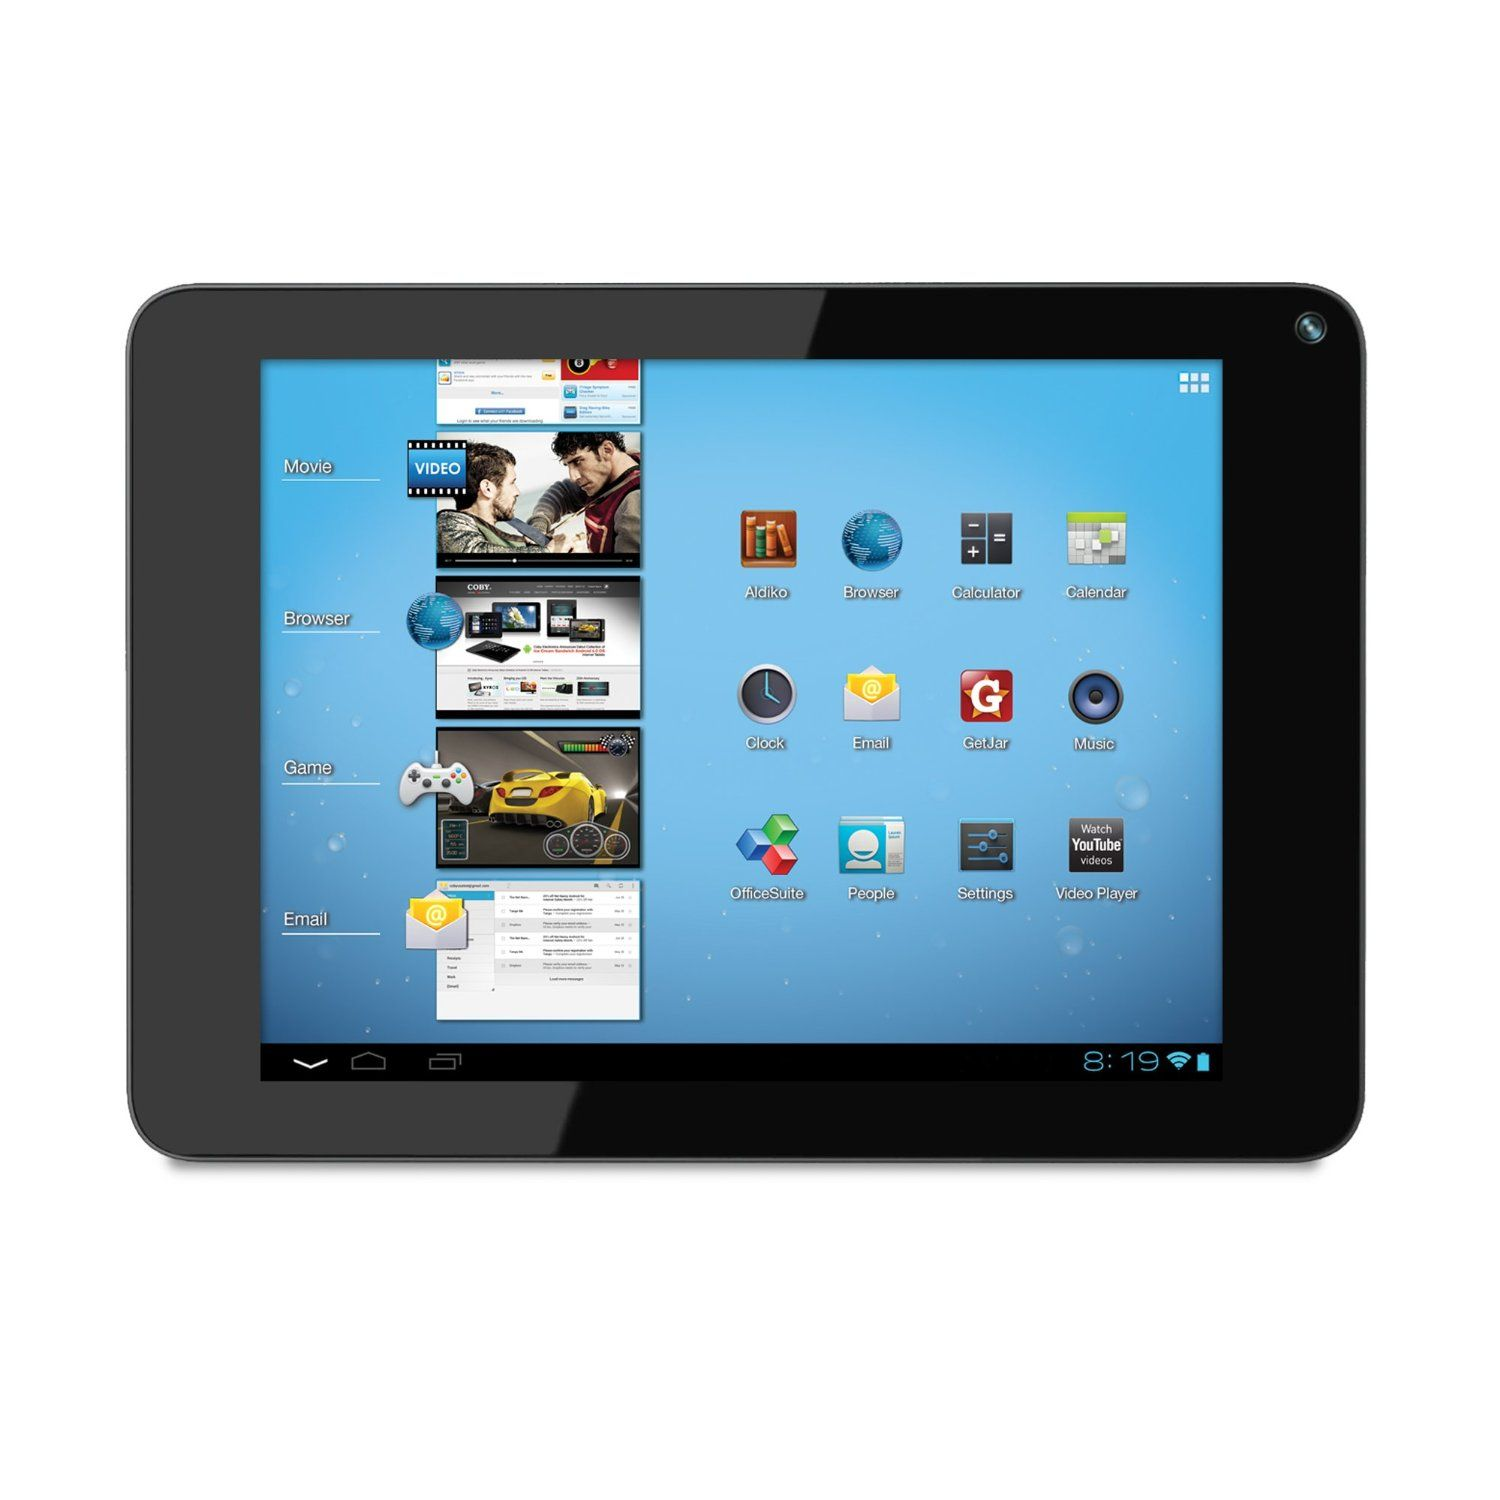 Coby Kyros Mid1048 8 Gb Tablet 10 1 Telechips Cortex A5 1 Ghz Touch Screen Android Tablets